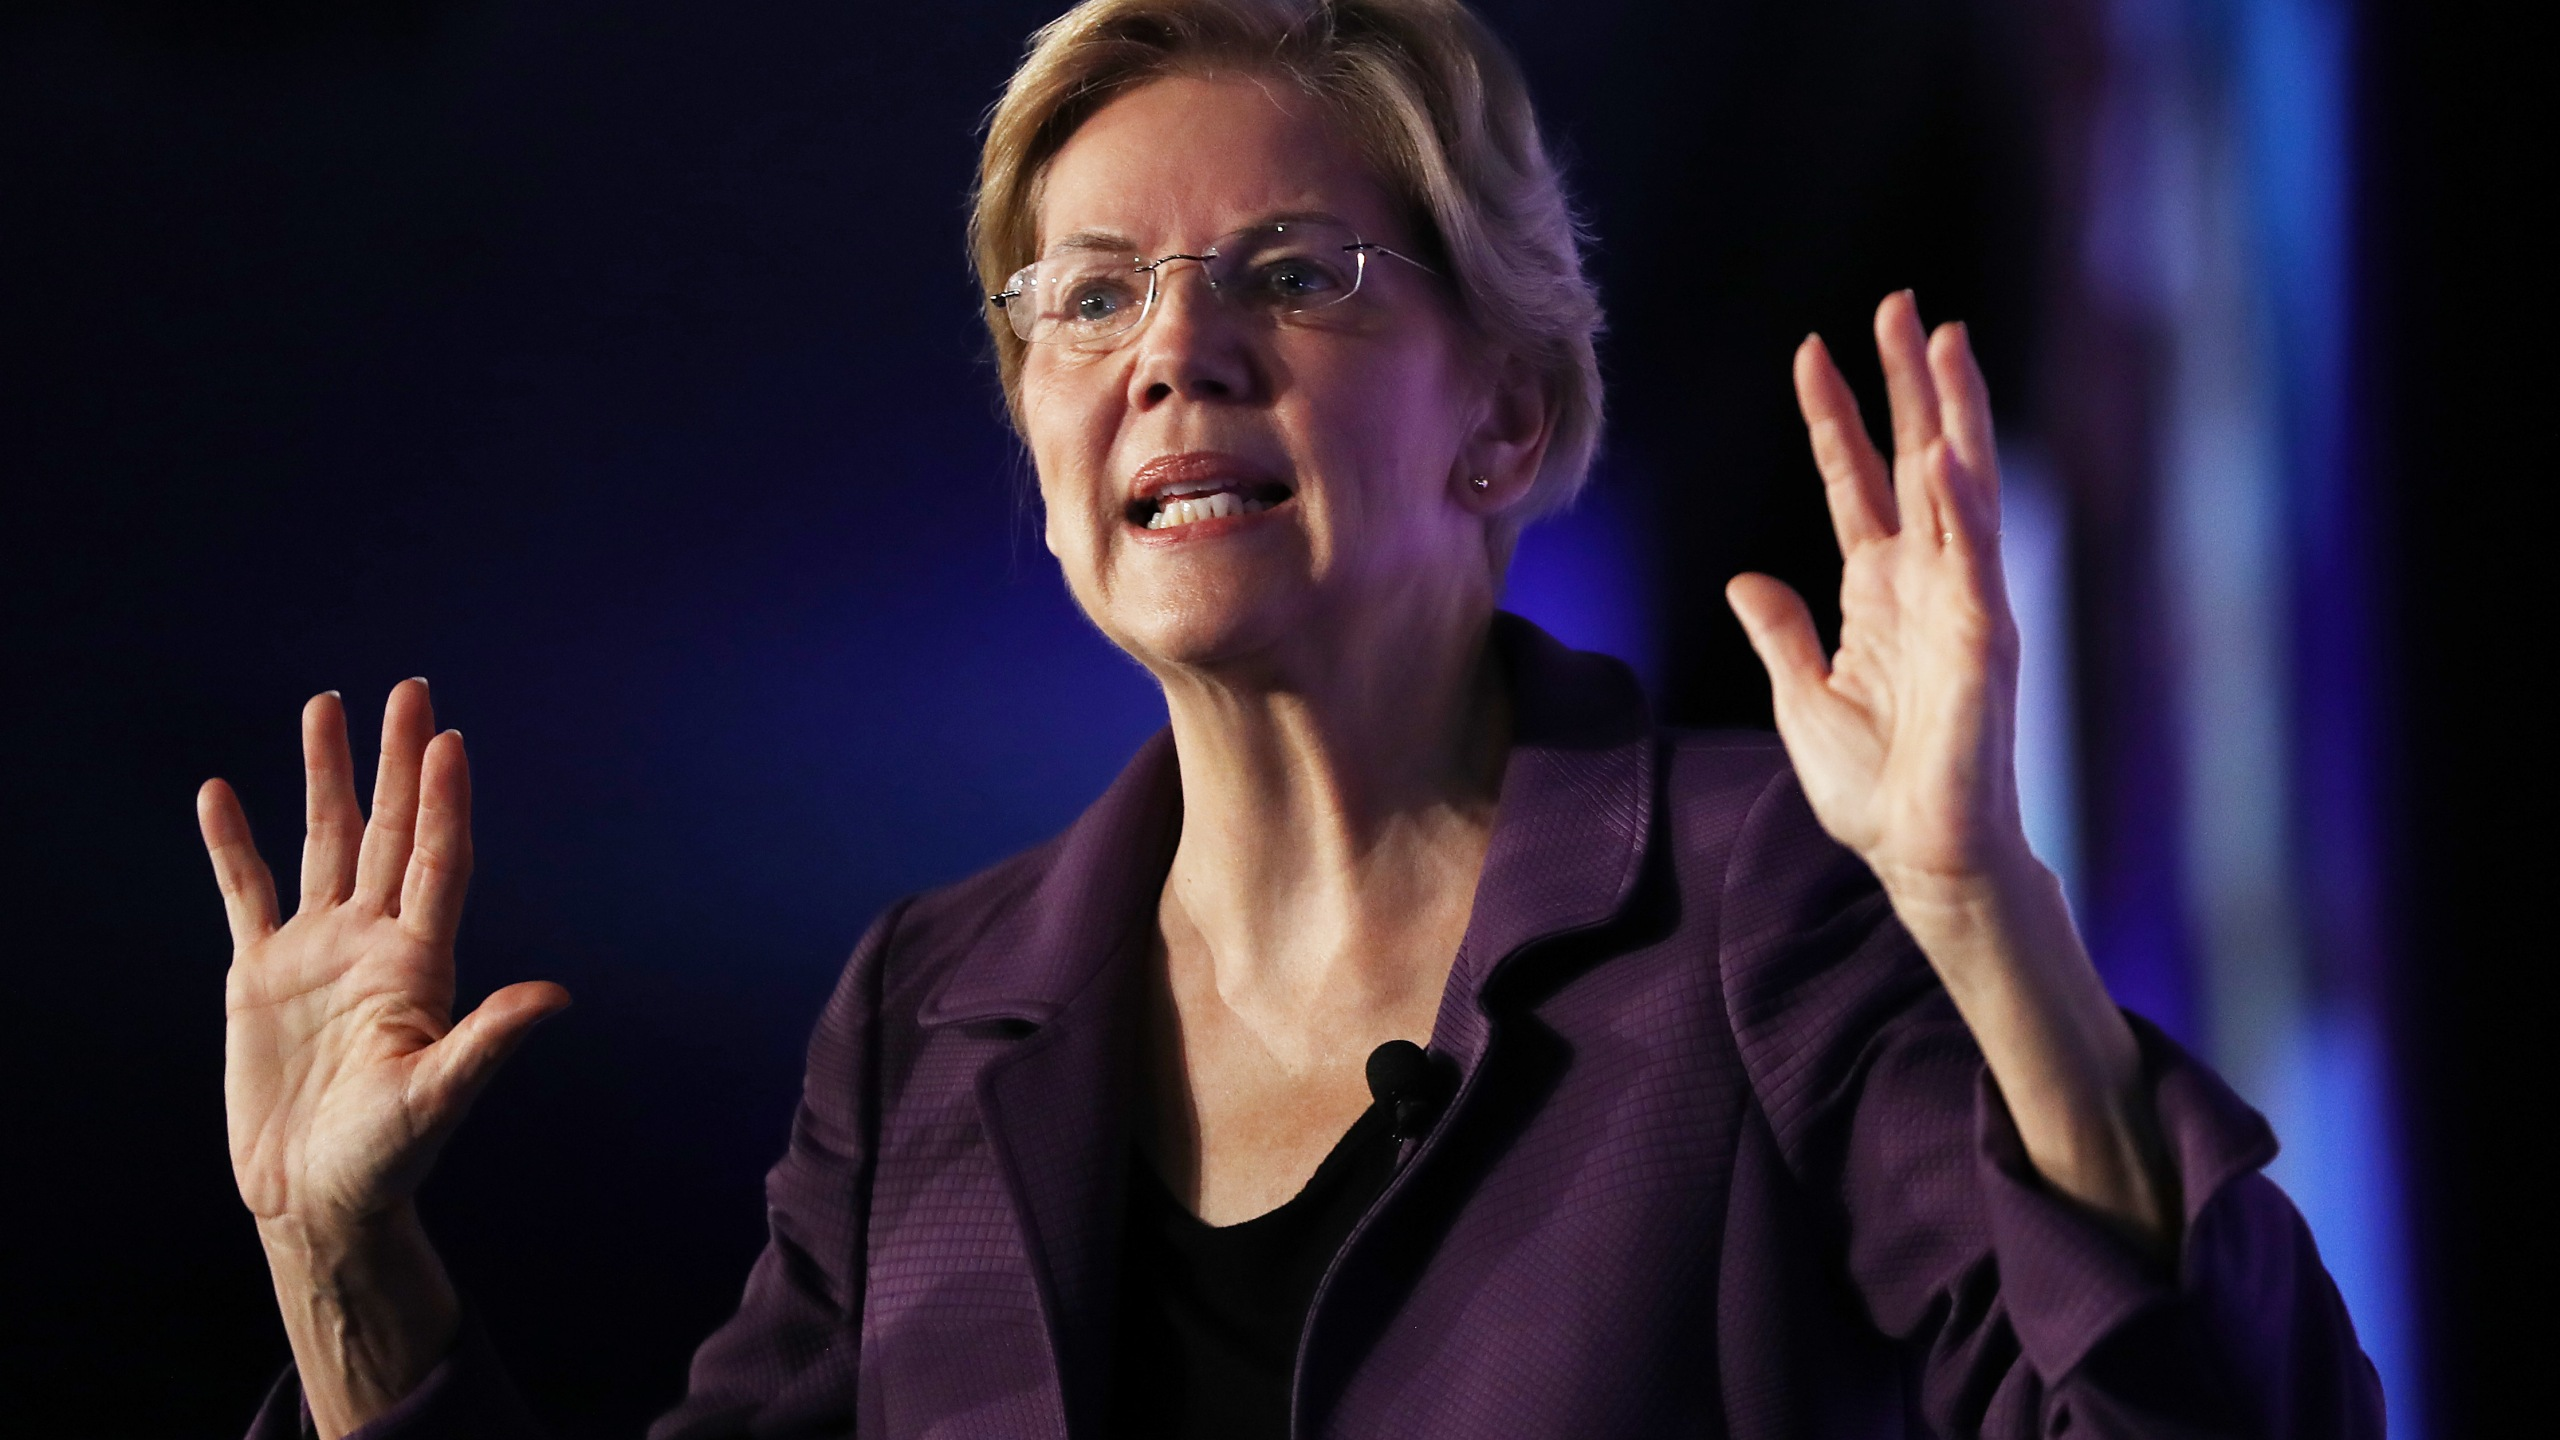 Democratic presidential candidate Sen. Elizabeth Warren (D-MA) speaks at the SEIU Unions for All Summit on Oct. 4, 2019, in Los Angeles. (Credit: Mario Tama/Getty Images)